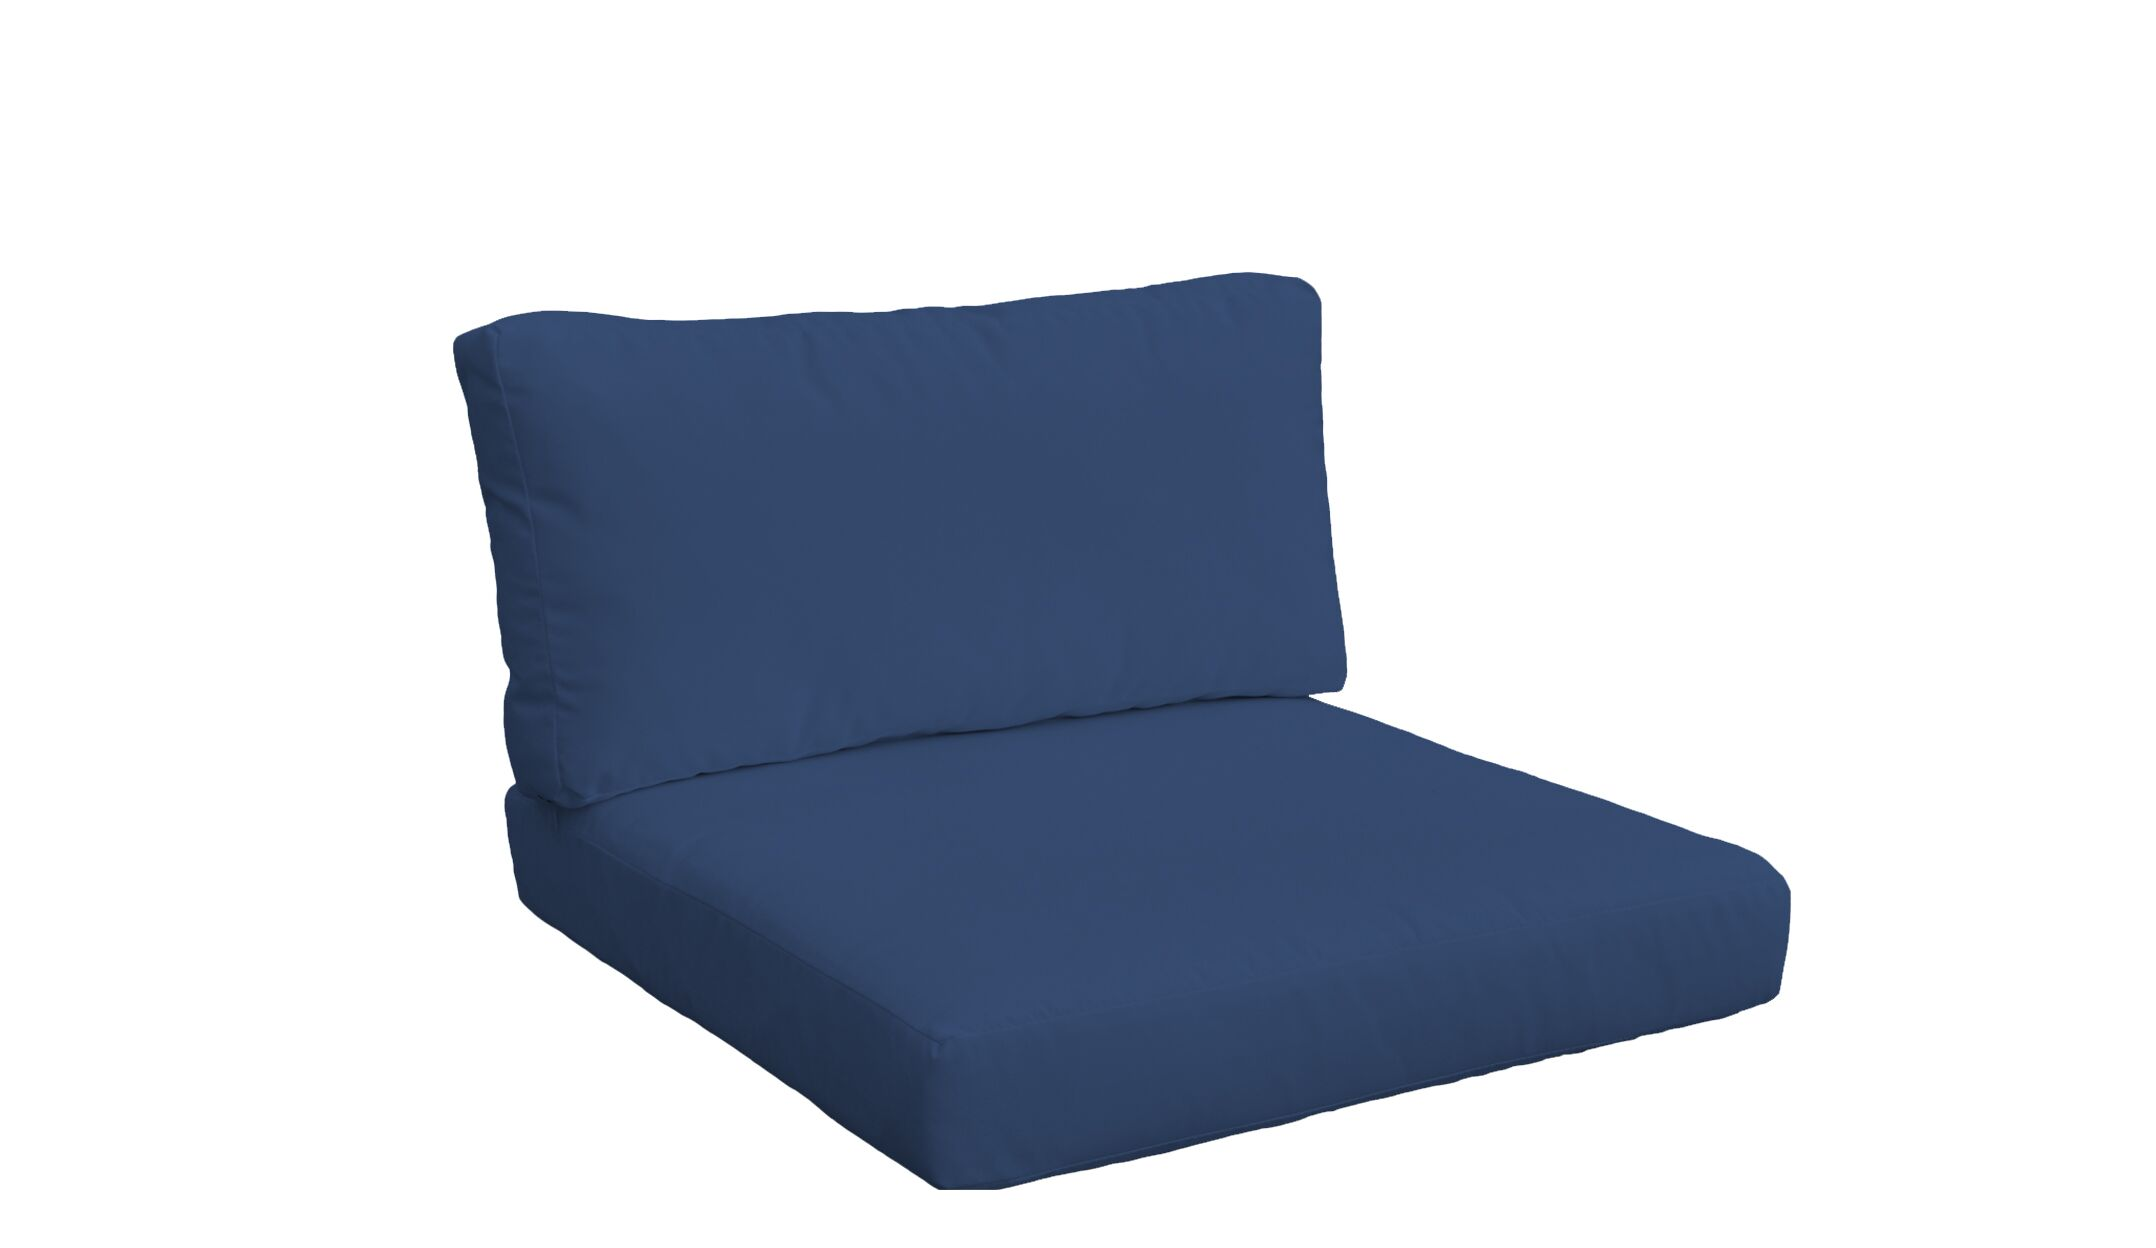 Monaco Outdoor 4 Piece Lounge Chair Cushion Set Fabric: Navy